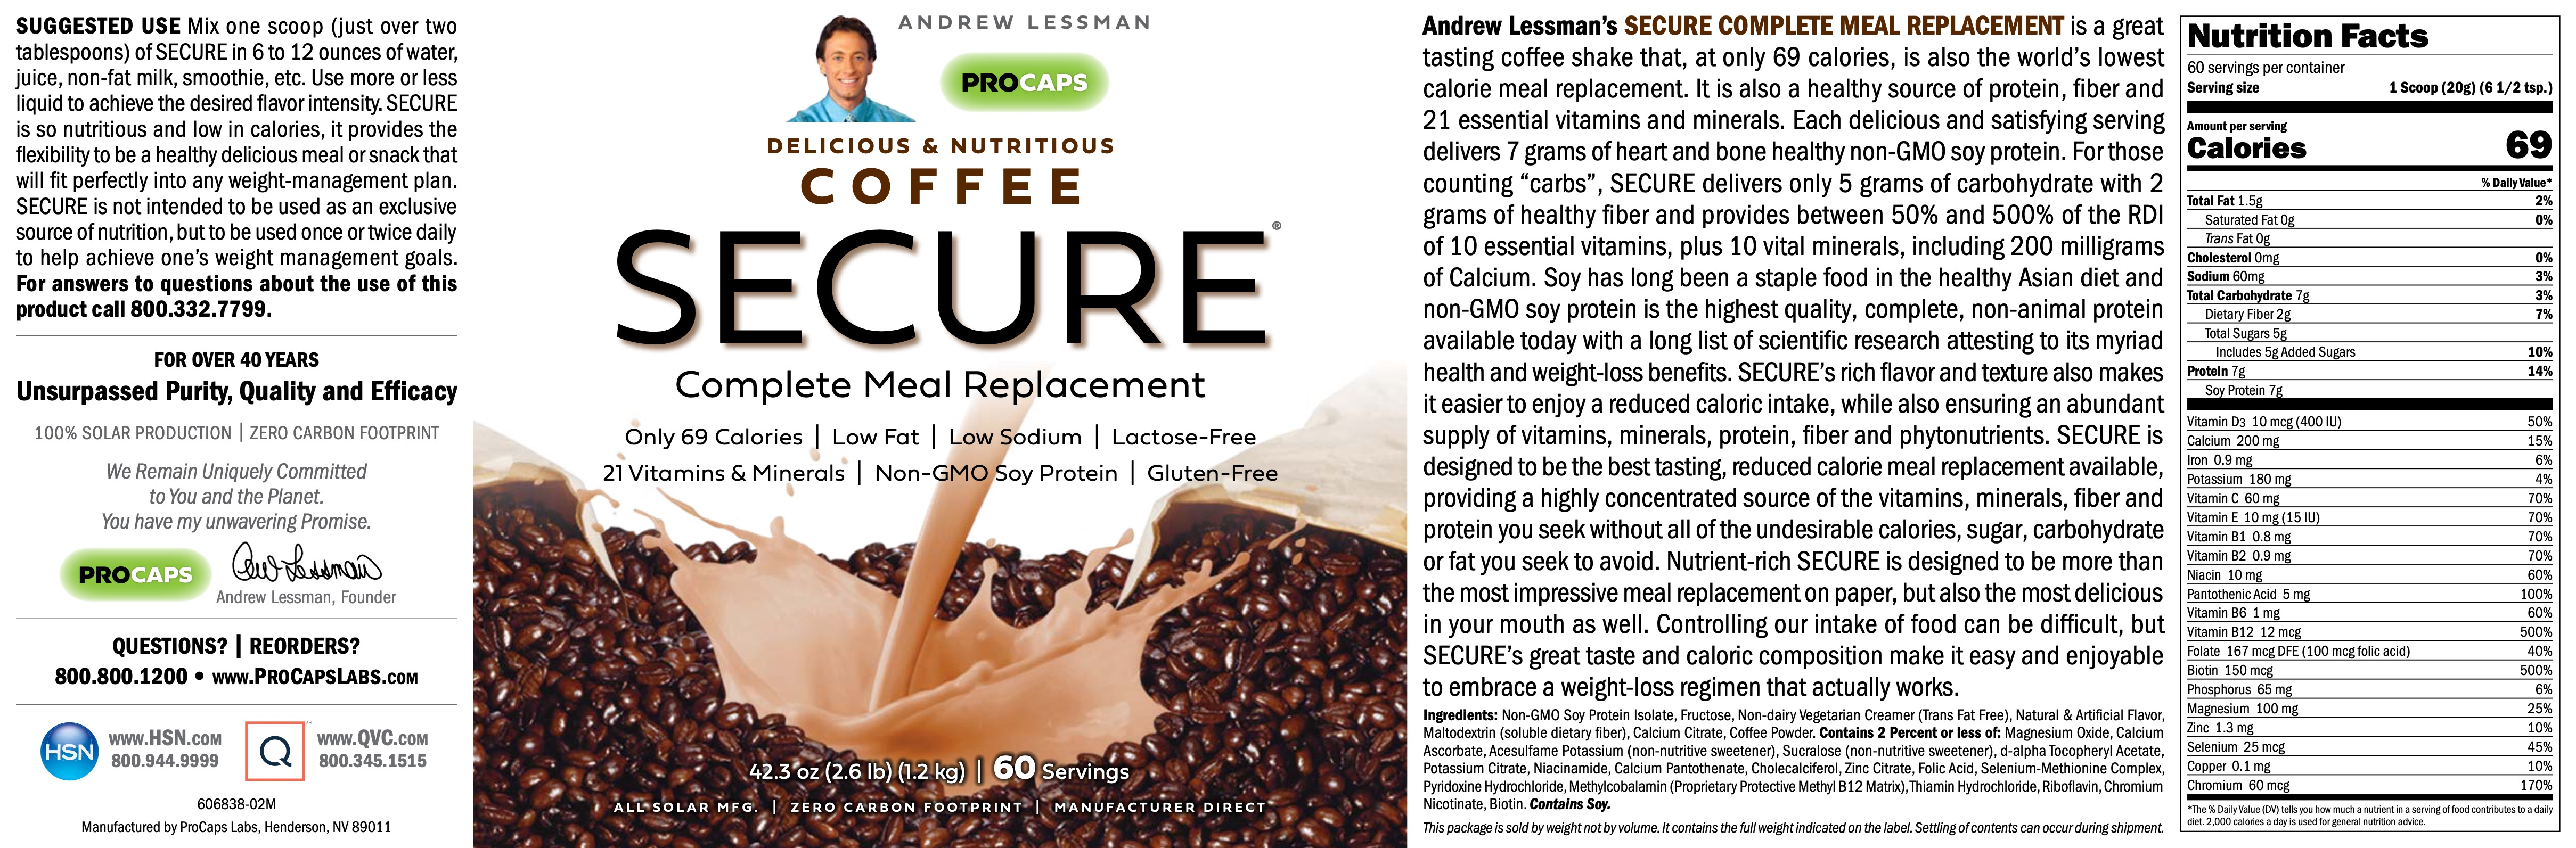 Secure-Soy-Complete-Meal-Replacement-Coffee-Weight-Management